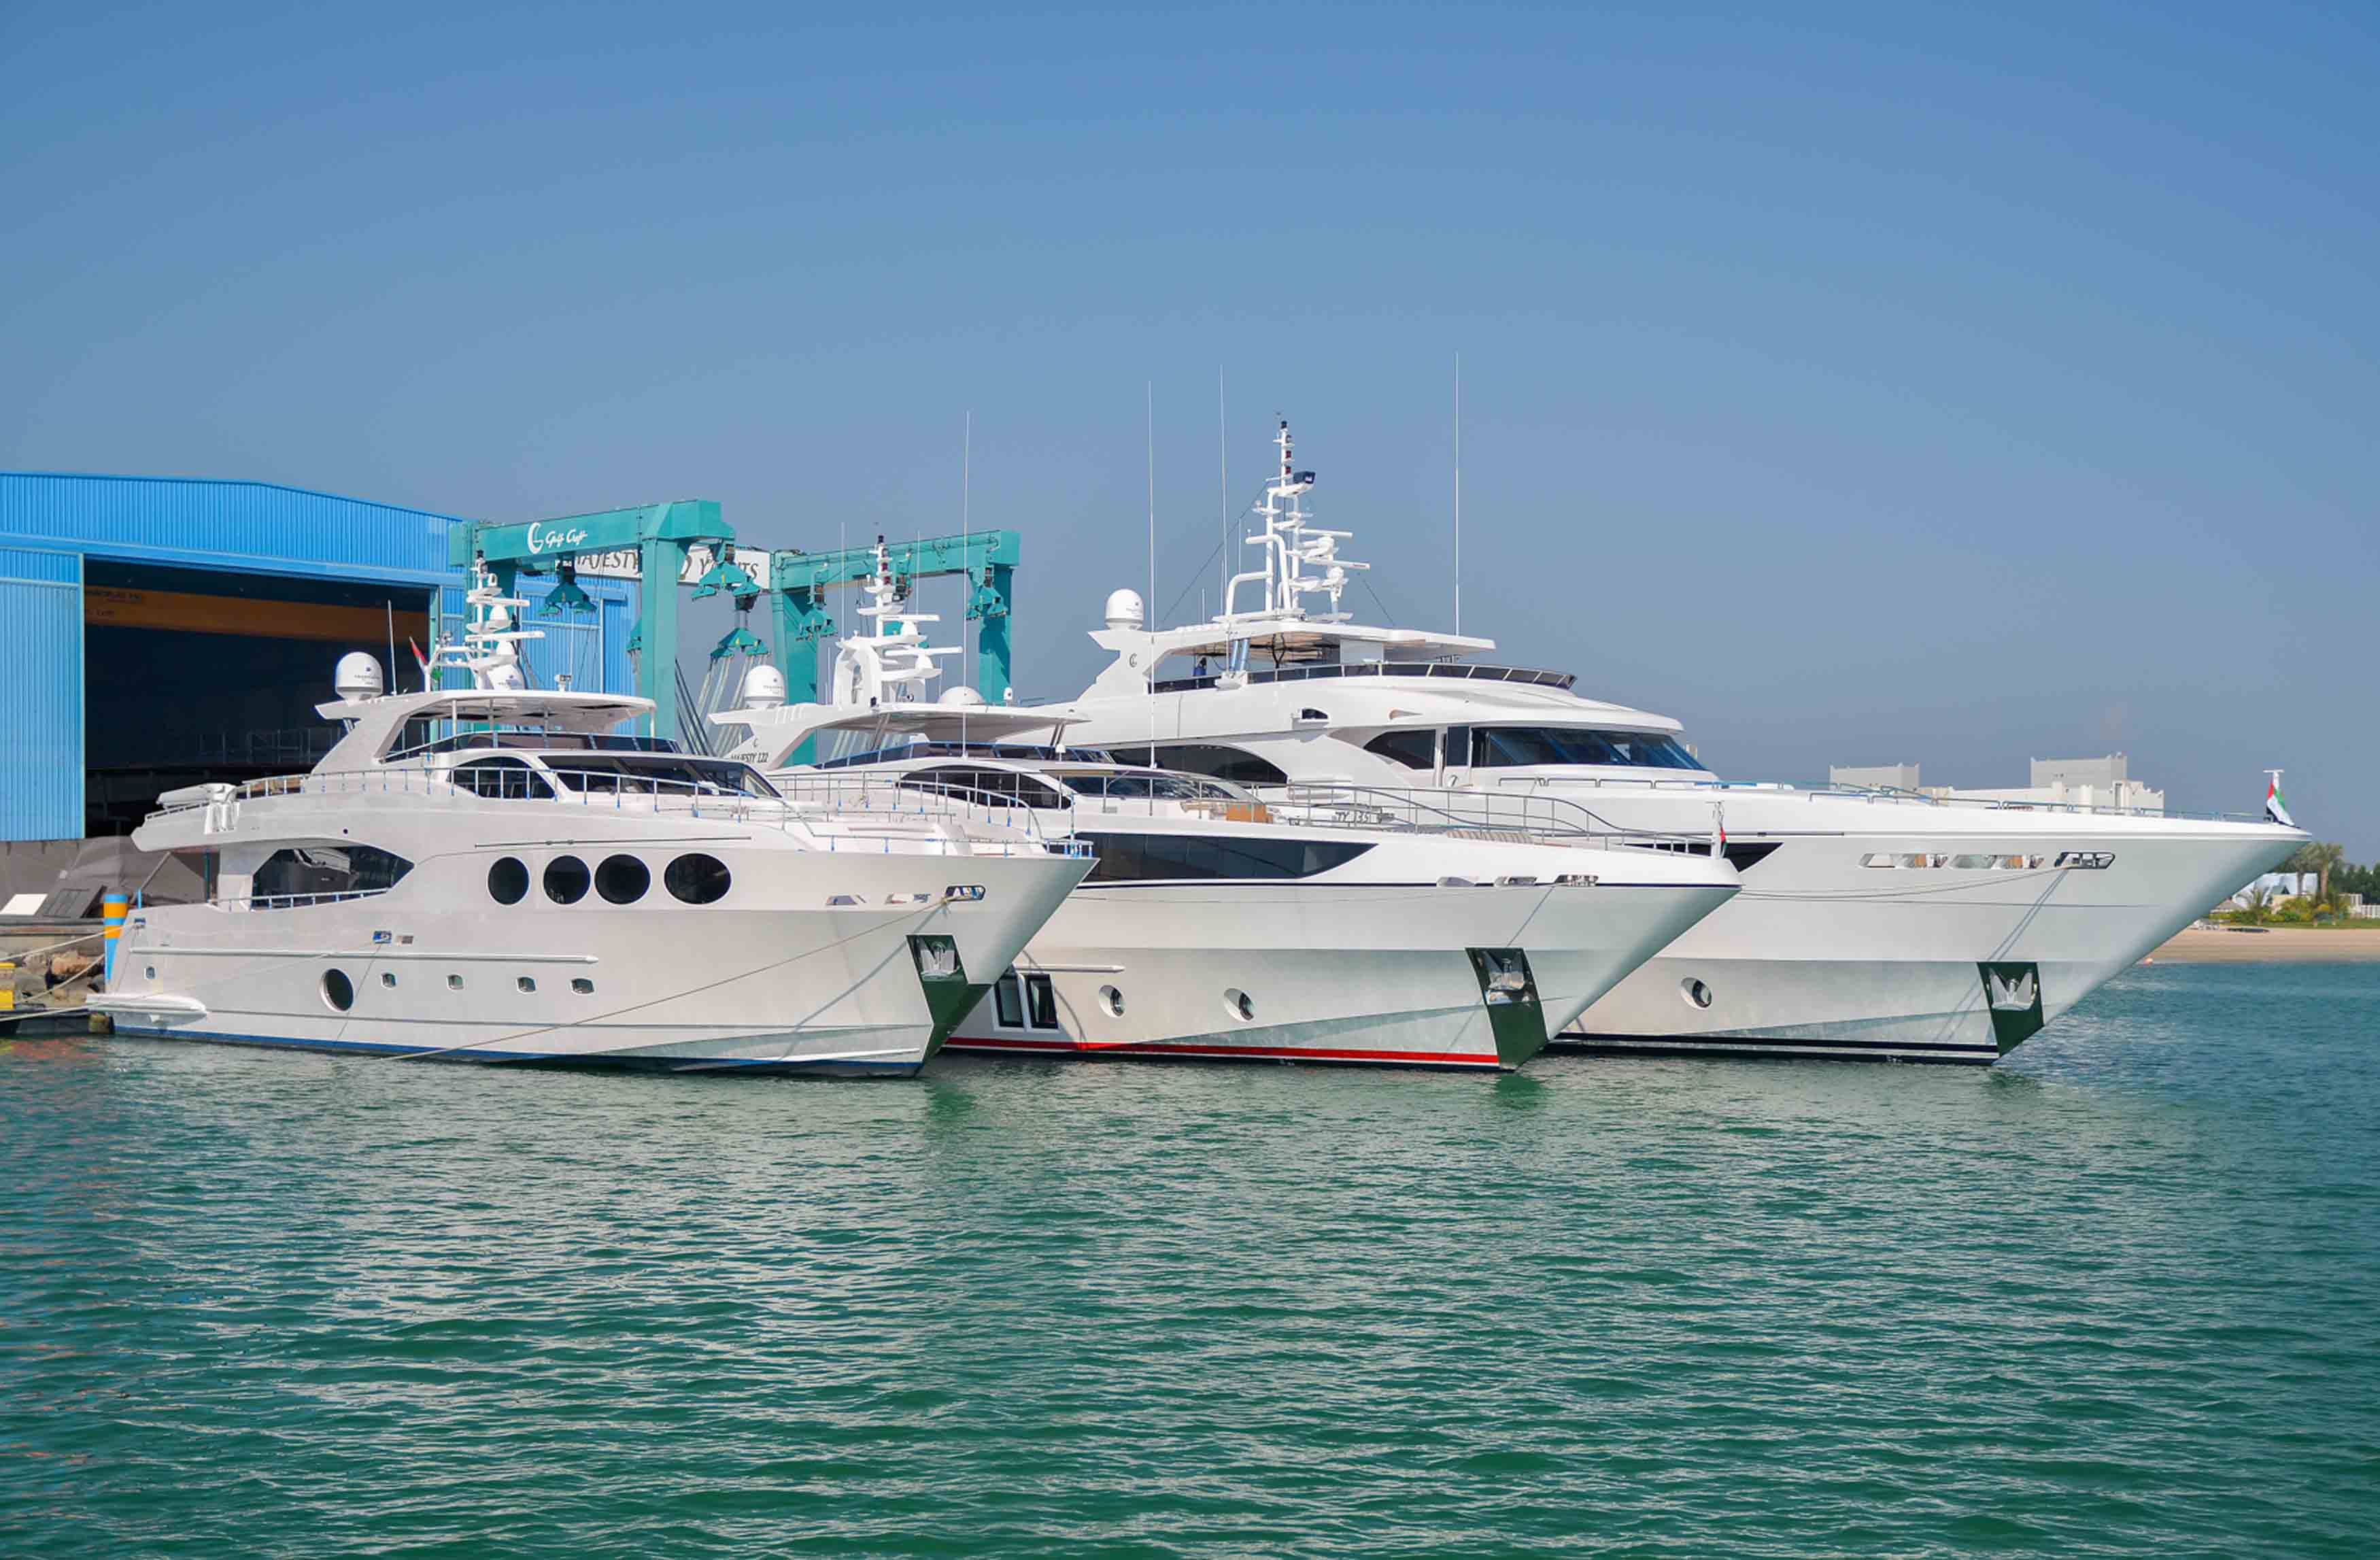 Gulf Craft Uae